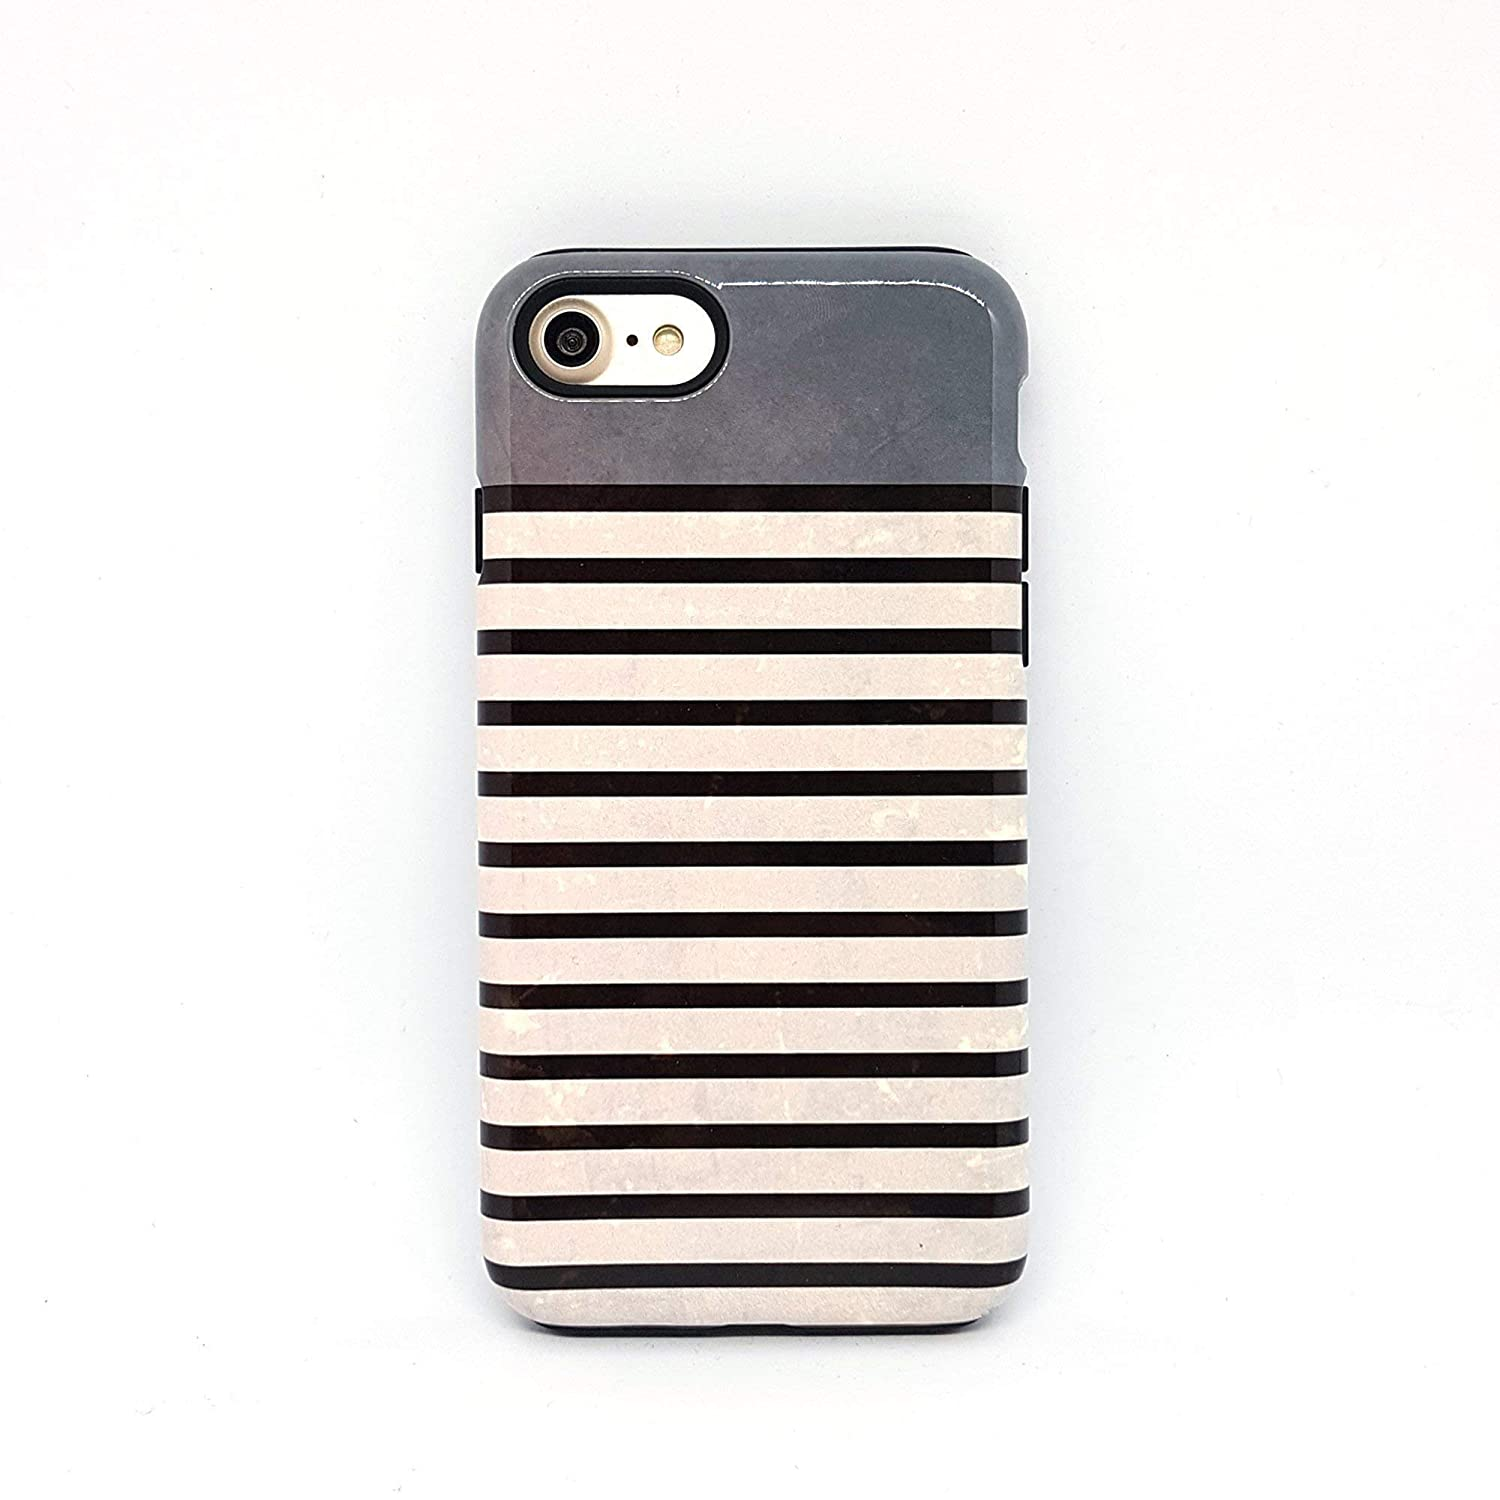 Stripe Stripes Striped cover case TPU Tough for iPhone 5, 5s, 6, 6s, 7, 7 plus, 8, 8 plus, X, XS, for Galaxy S6, S7, S8